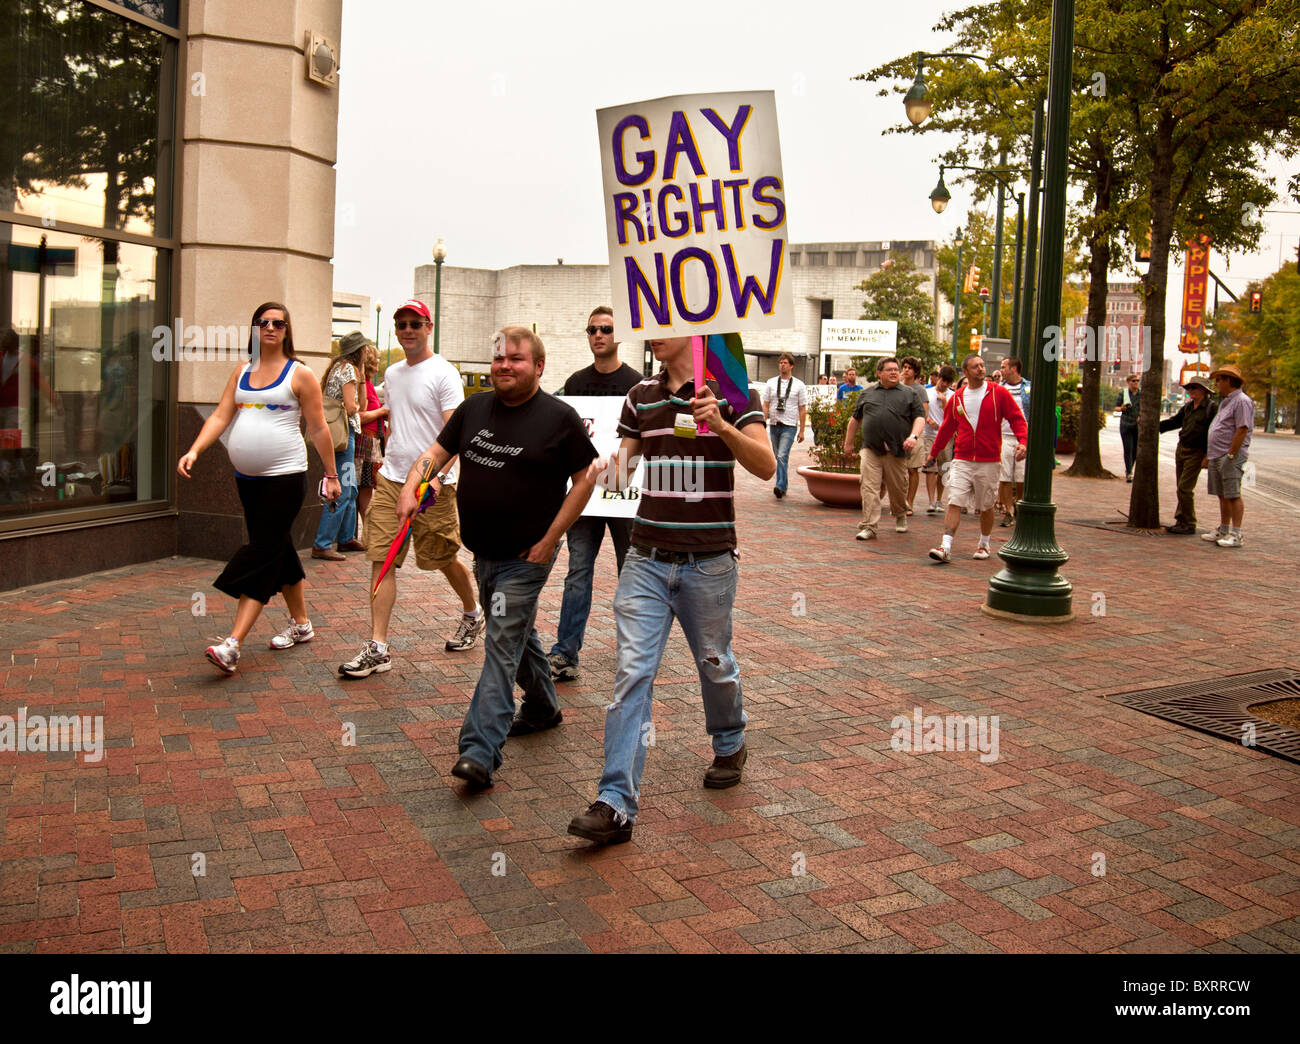 from Kameron gay rights protest